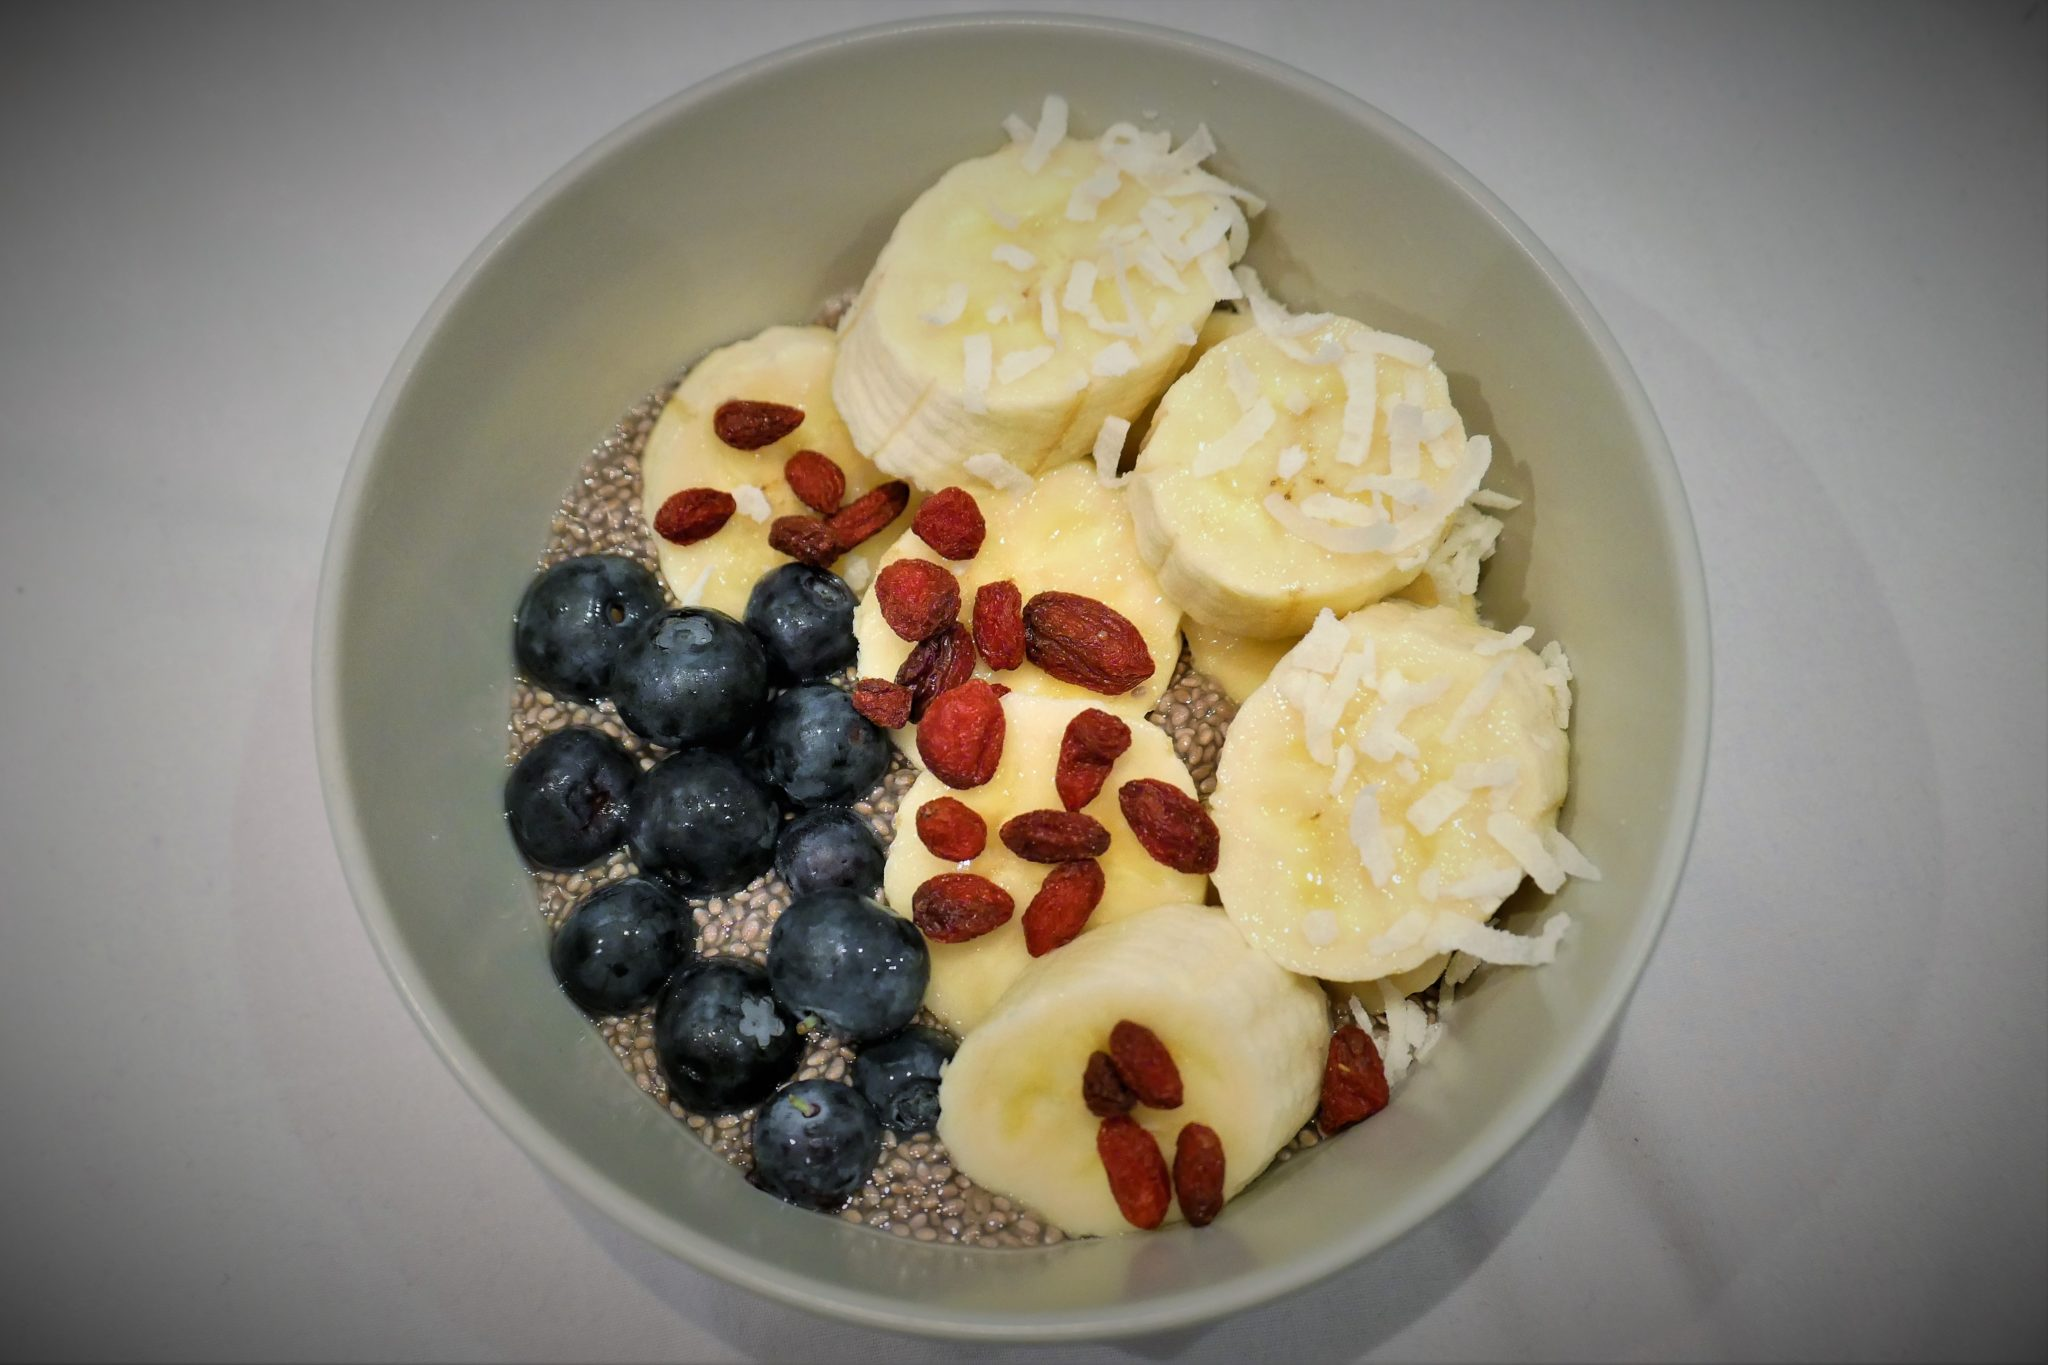 Chia pudding with banana and blueberries